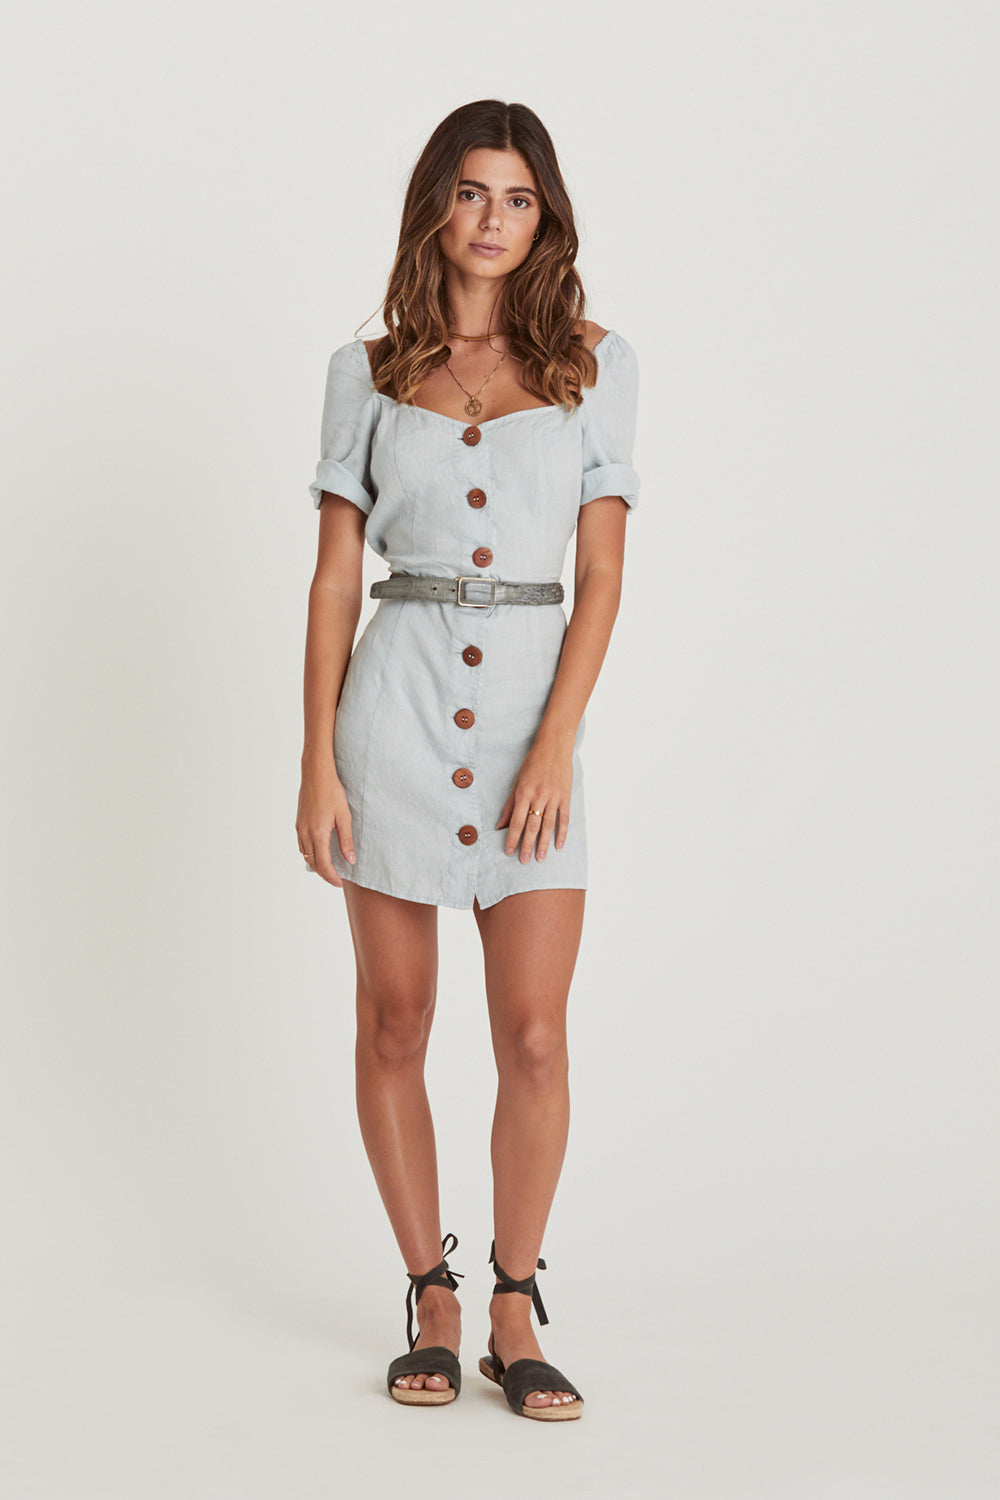 Chloe Mini Dress in Skyla